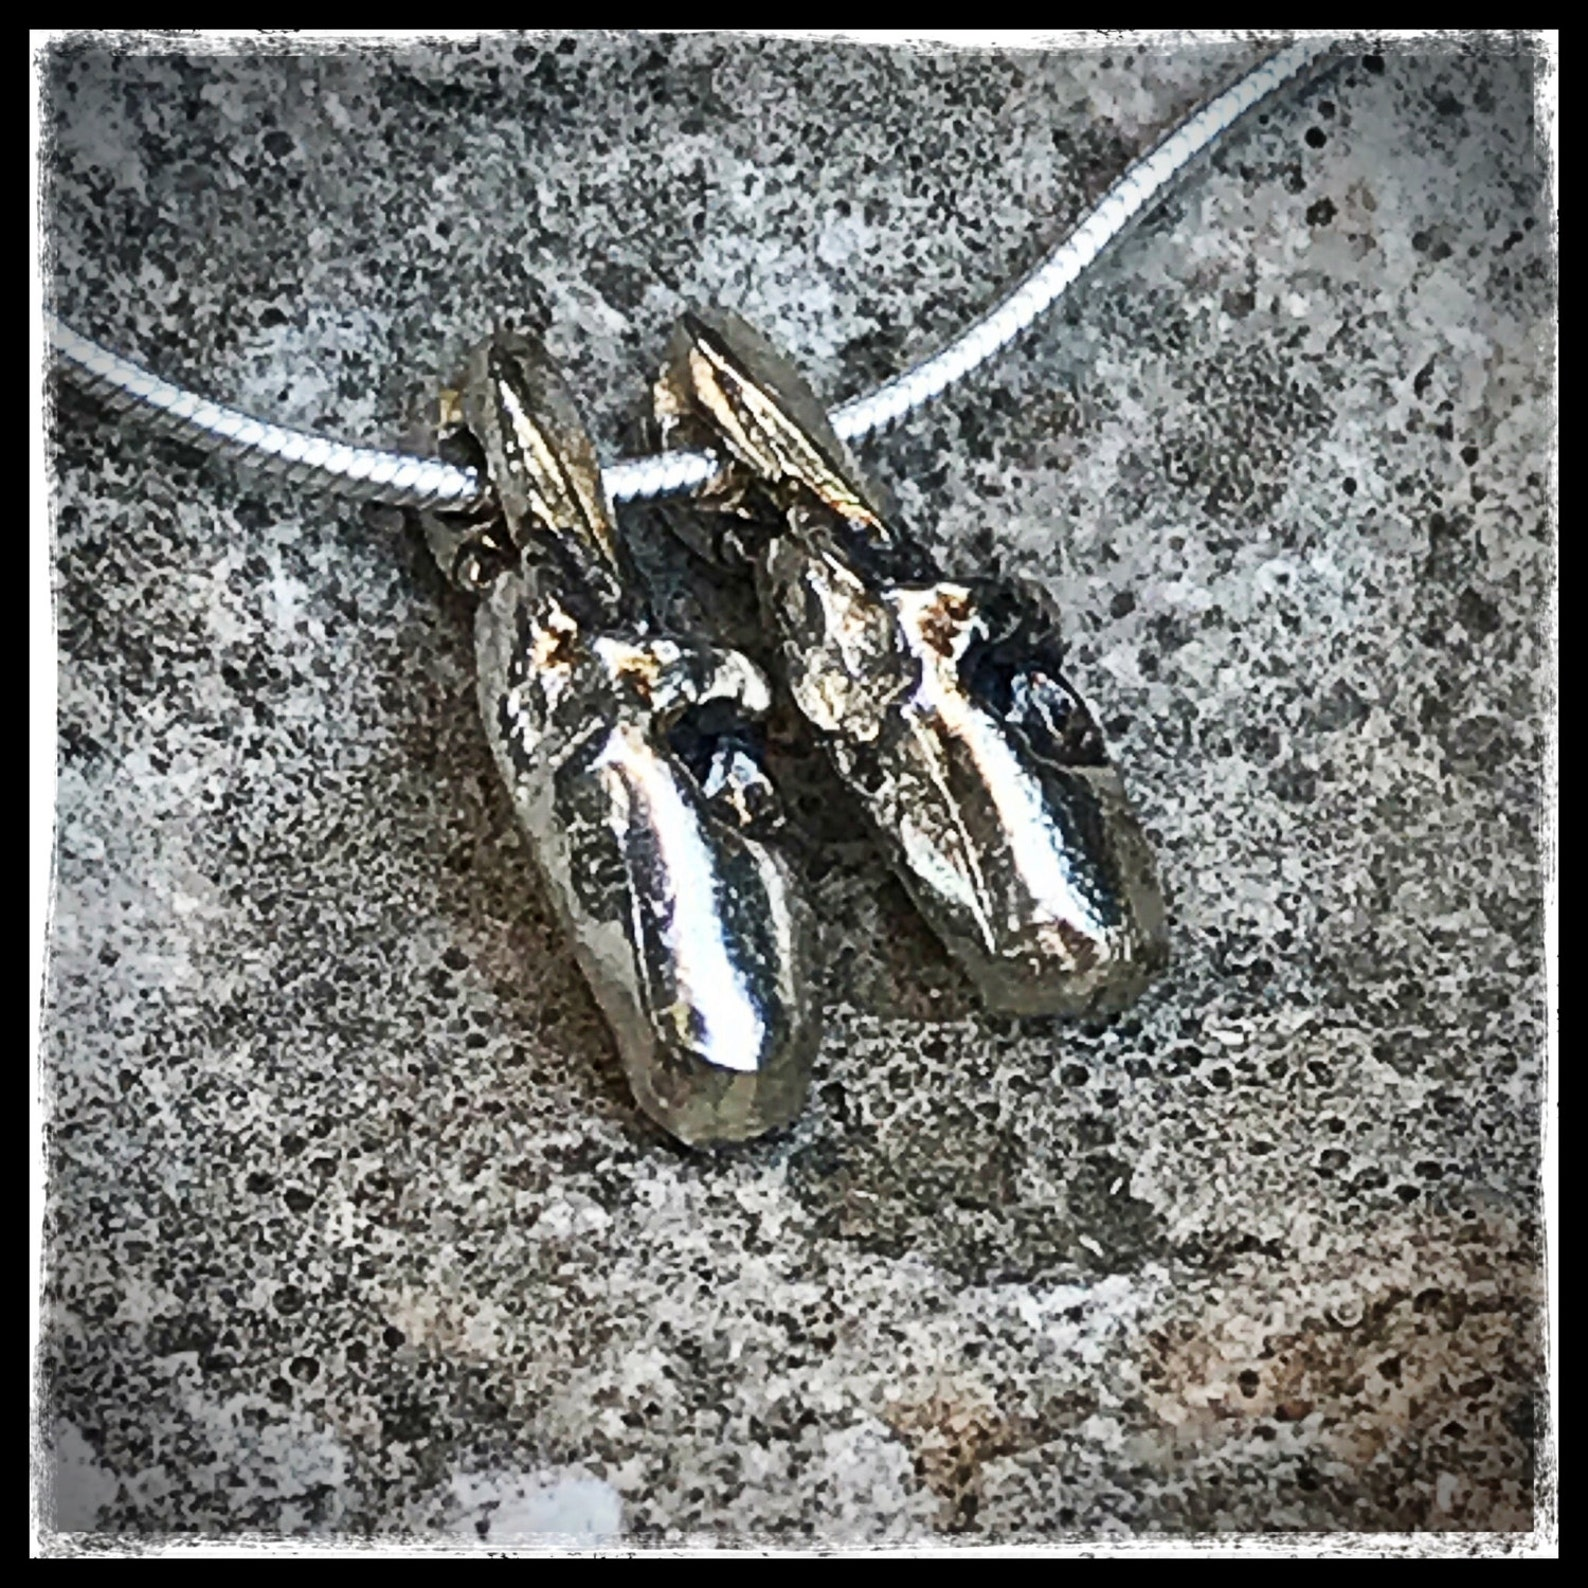 silver ballerina pendant. silver ballerina necklace. silver ballet shoes pendant. silver necklace ballet shoes.